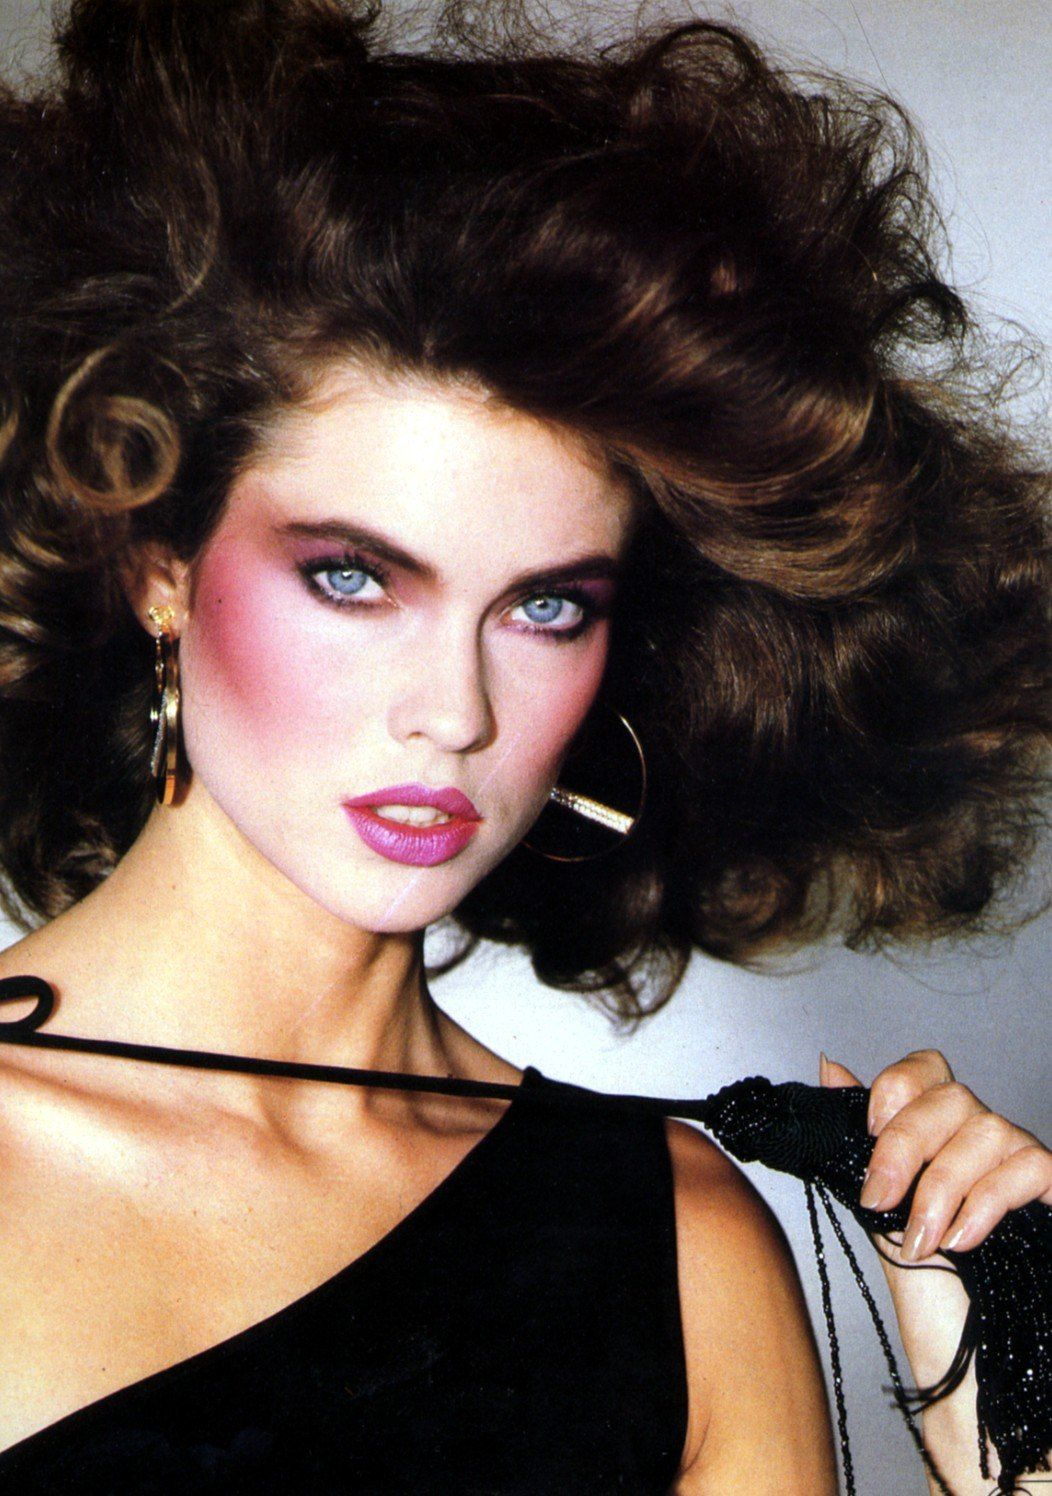 12 Craziest Vintage Beauty Trends That Will Make You Do A Double Take